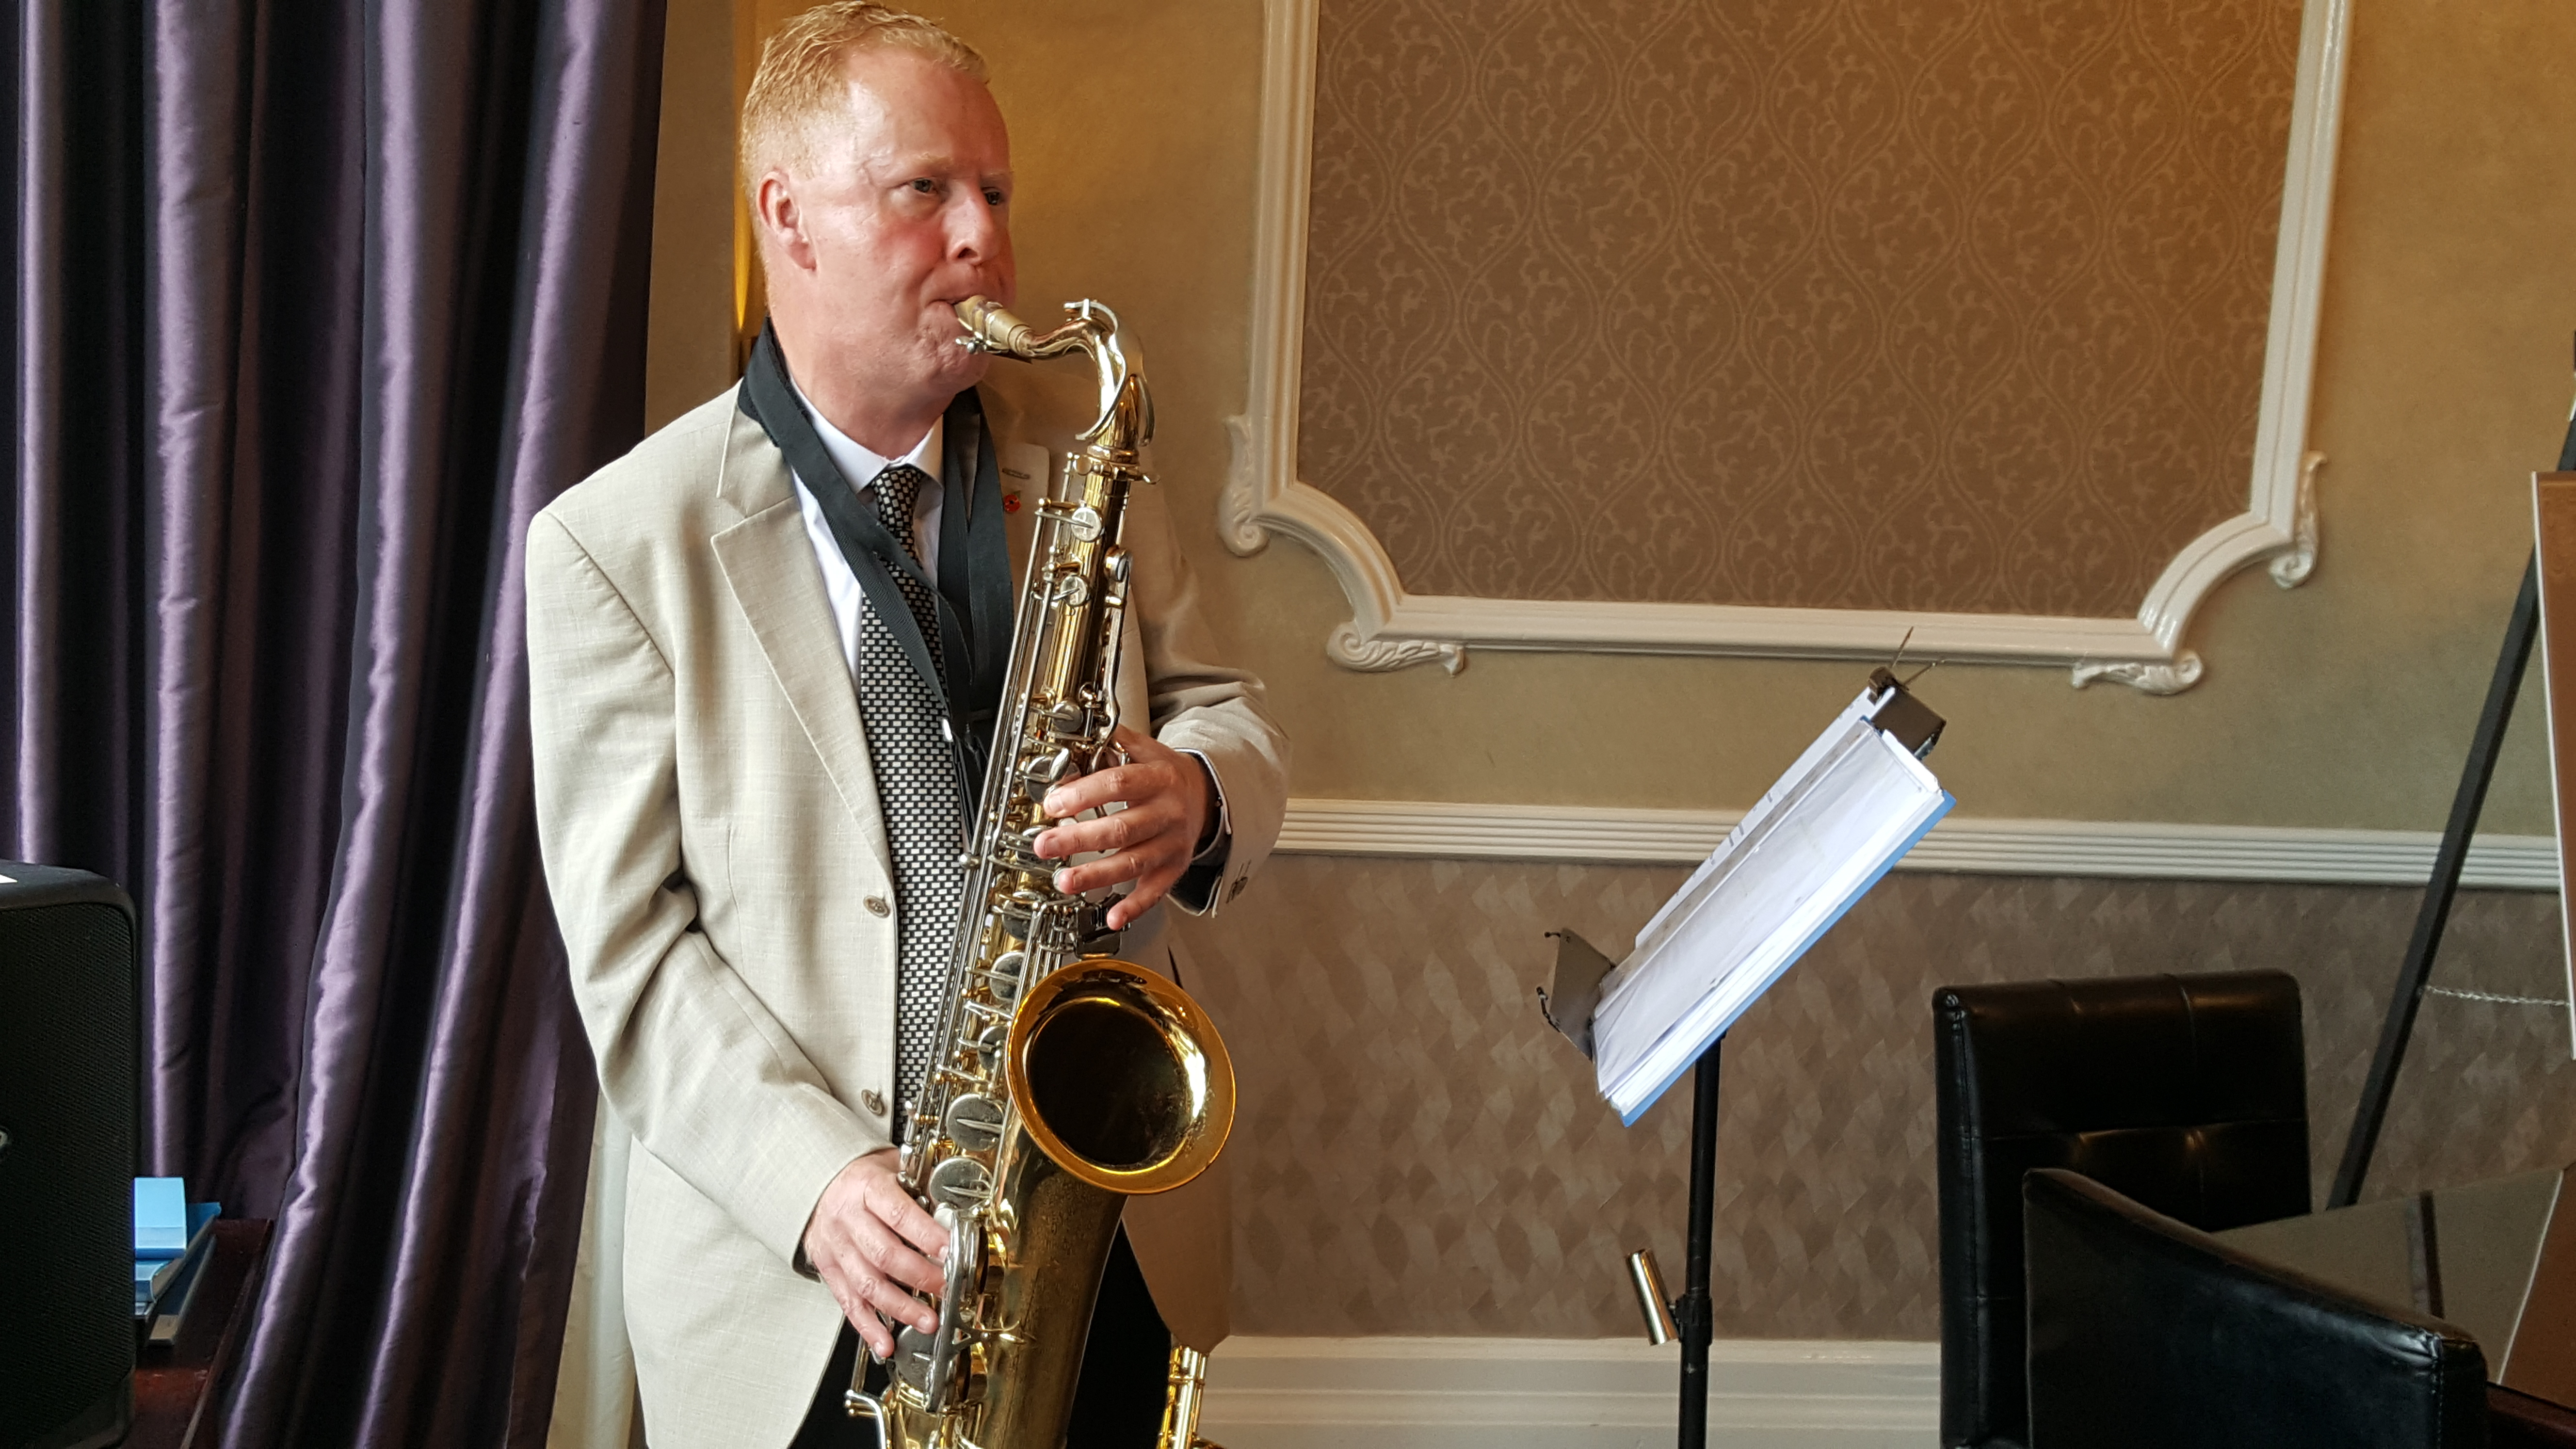 Tim Clarke - Wedding Saxophonist